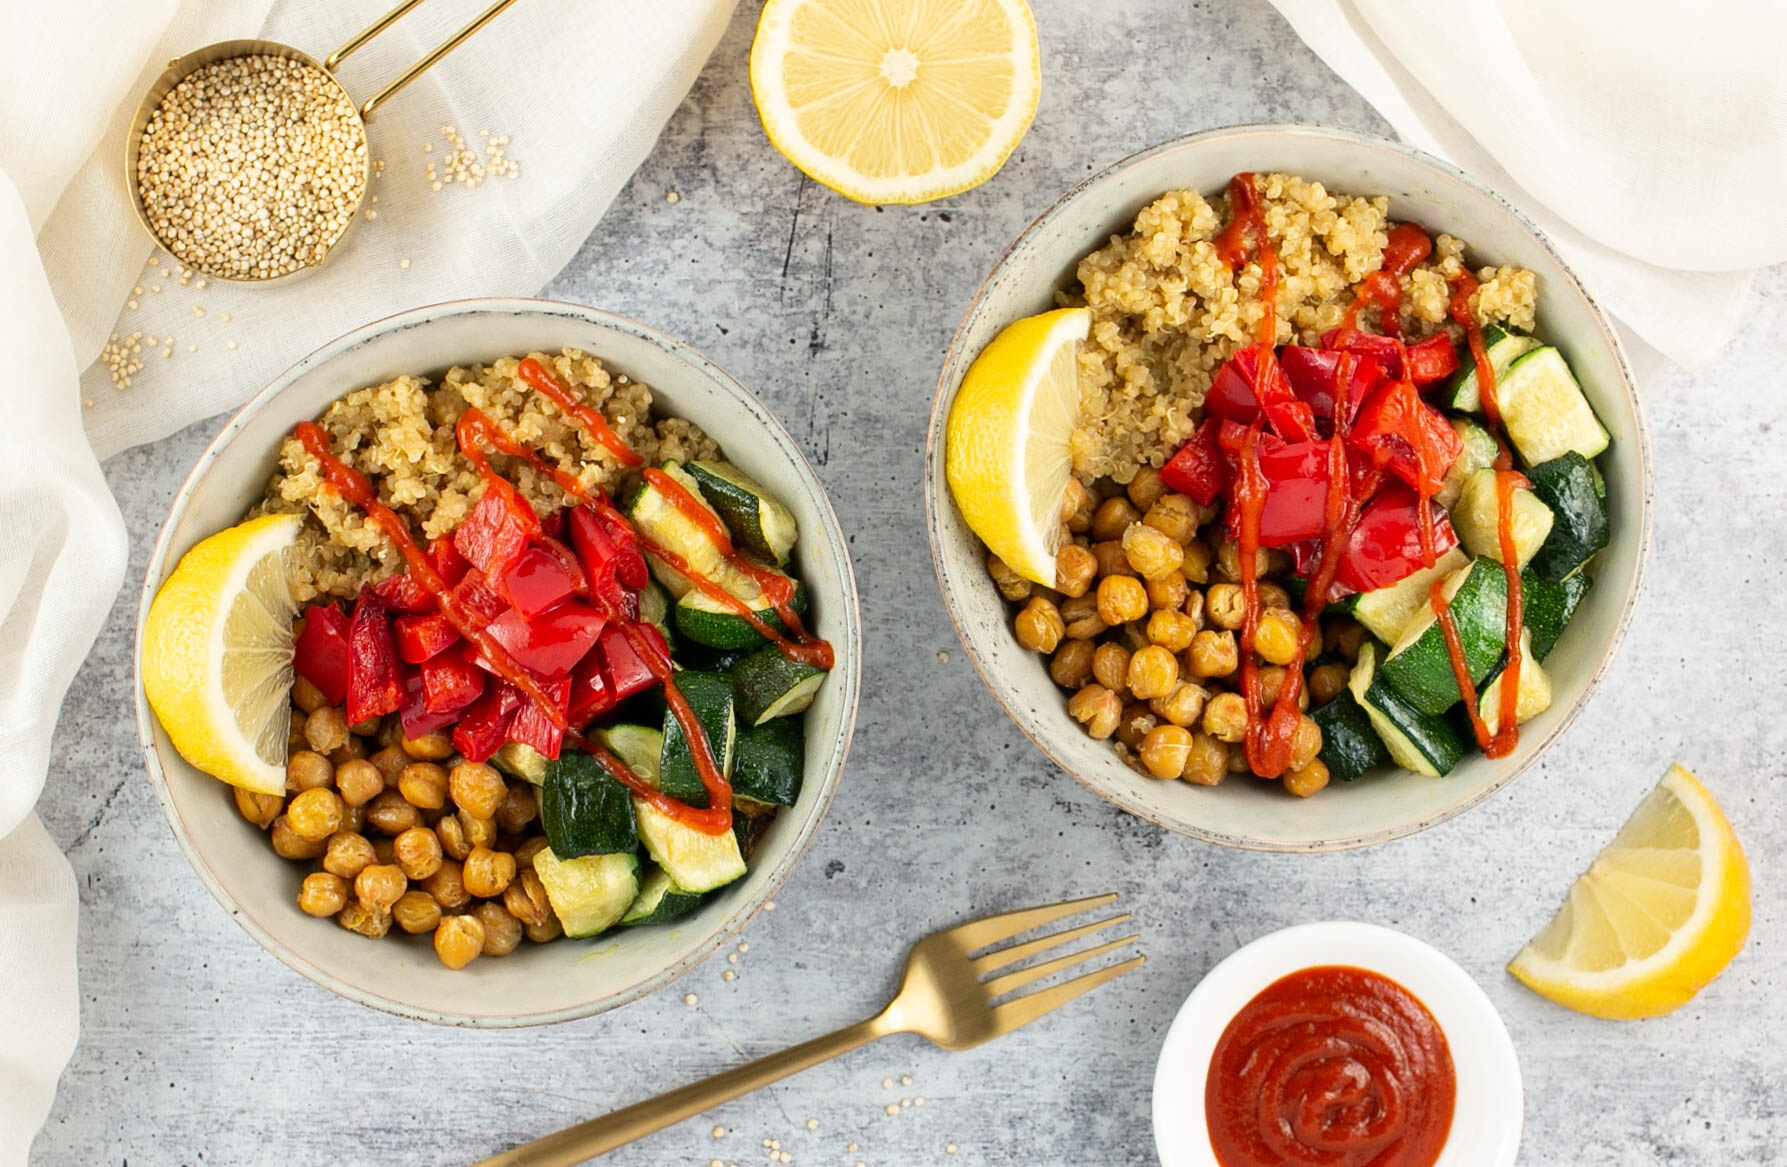 Roasted Vegetable and Chickpea Quinoa Bowls